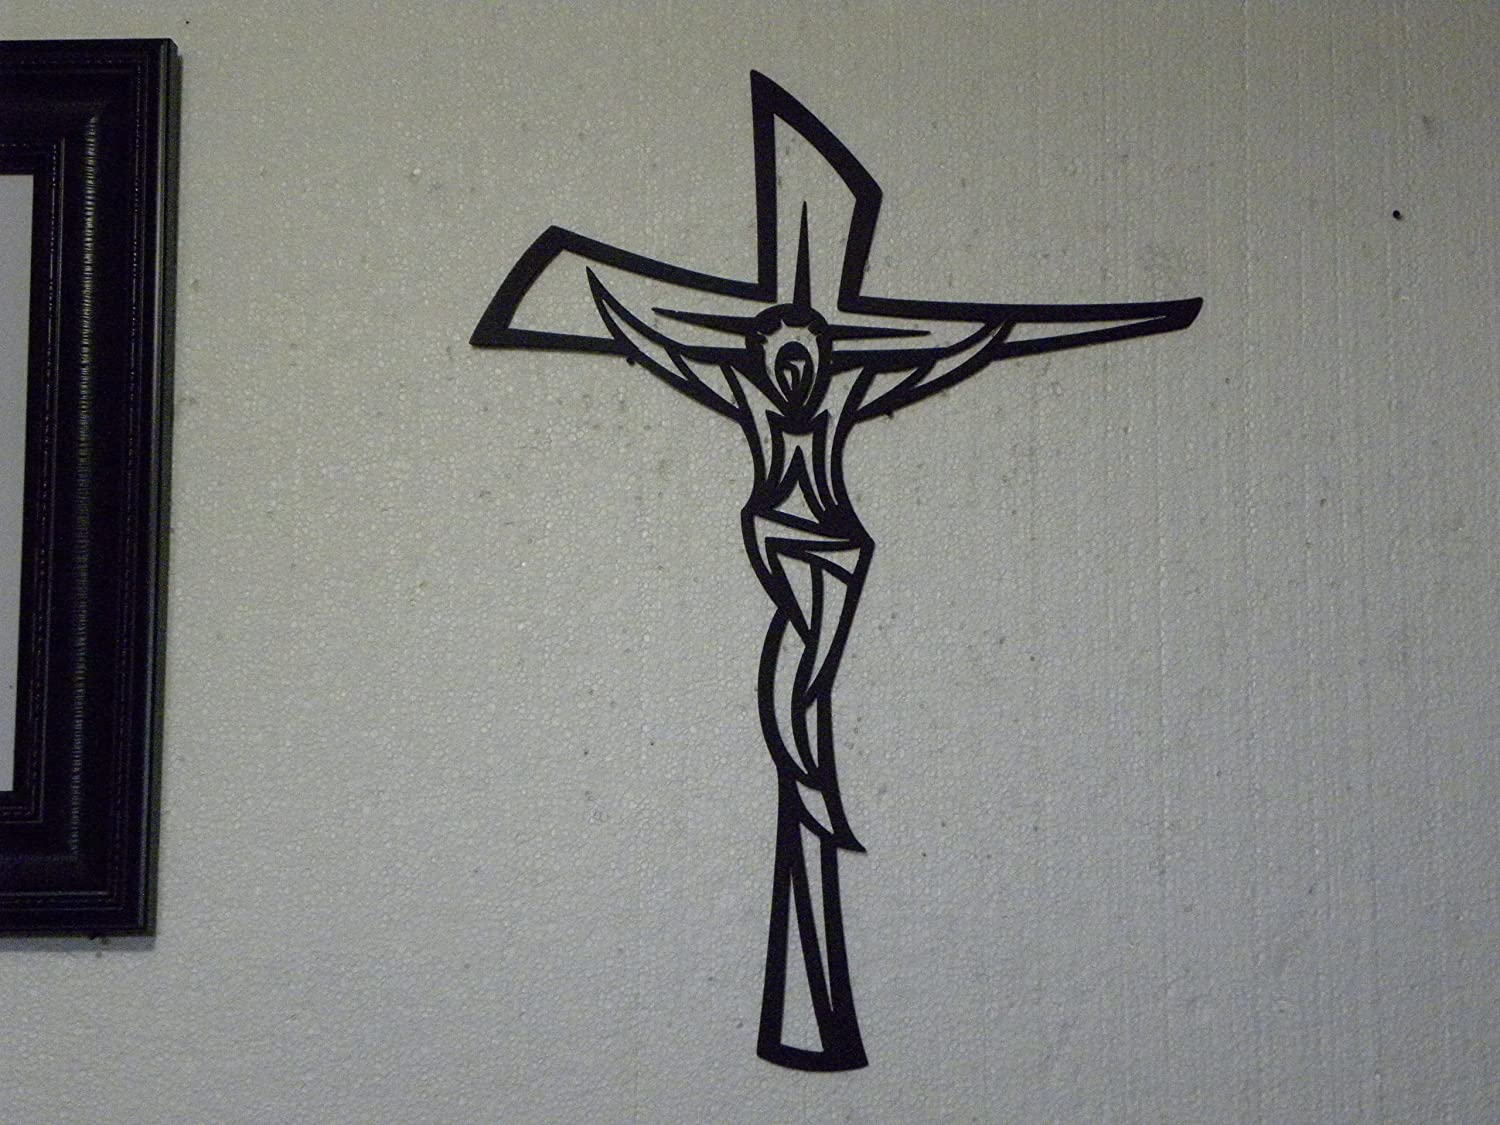 Merveilleux Amazon.com: Wall Cross Modern Metal Wall Sign Religious Home Decor: Home U0026  Kitchen